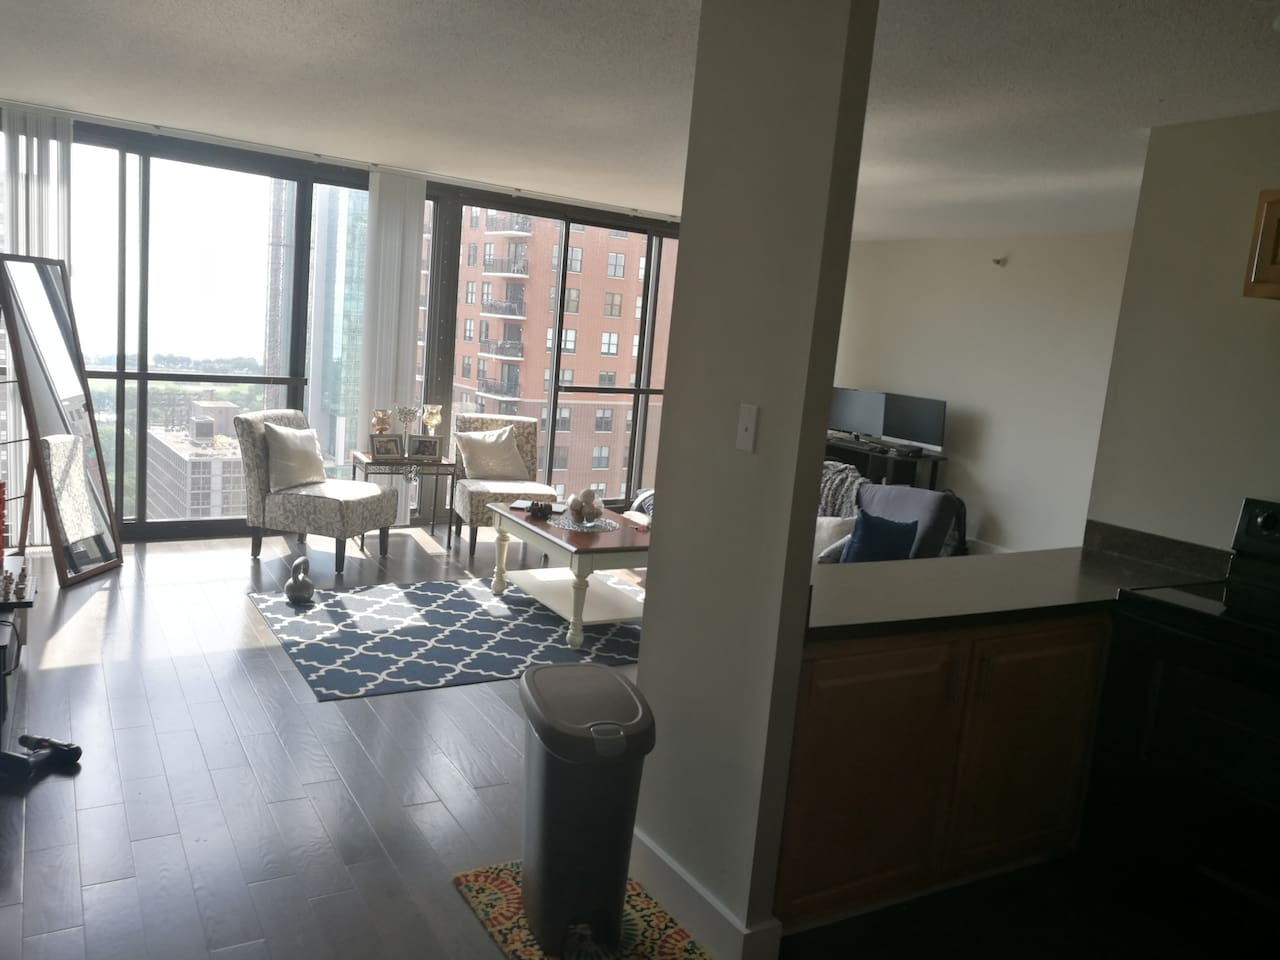 HUGE living room, terrific natural light. Floor to ceiling windows. Great for hosting guests when they visit you downtown!